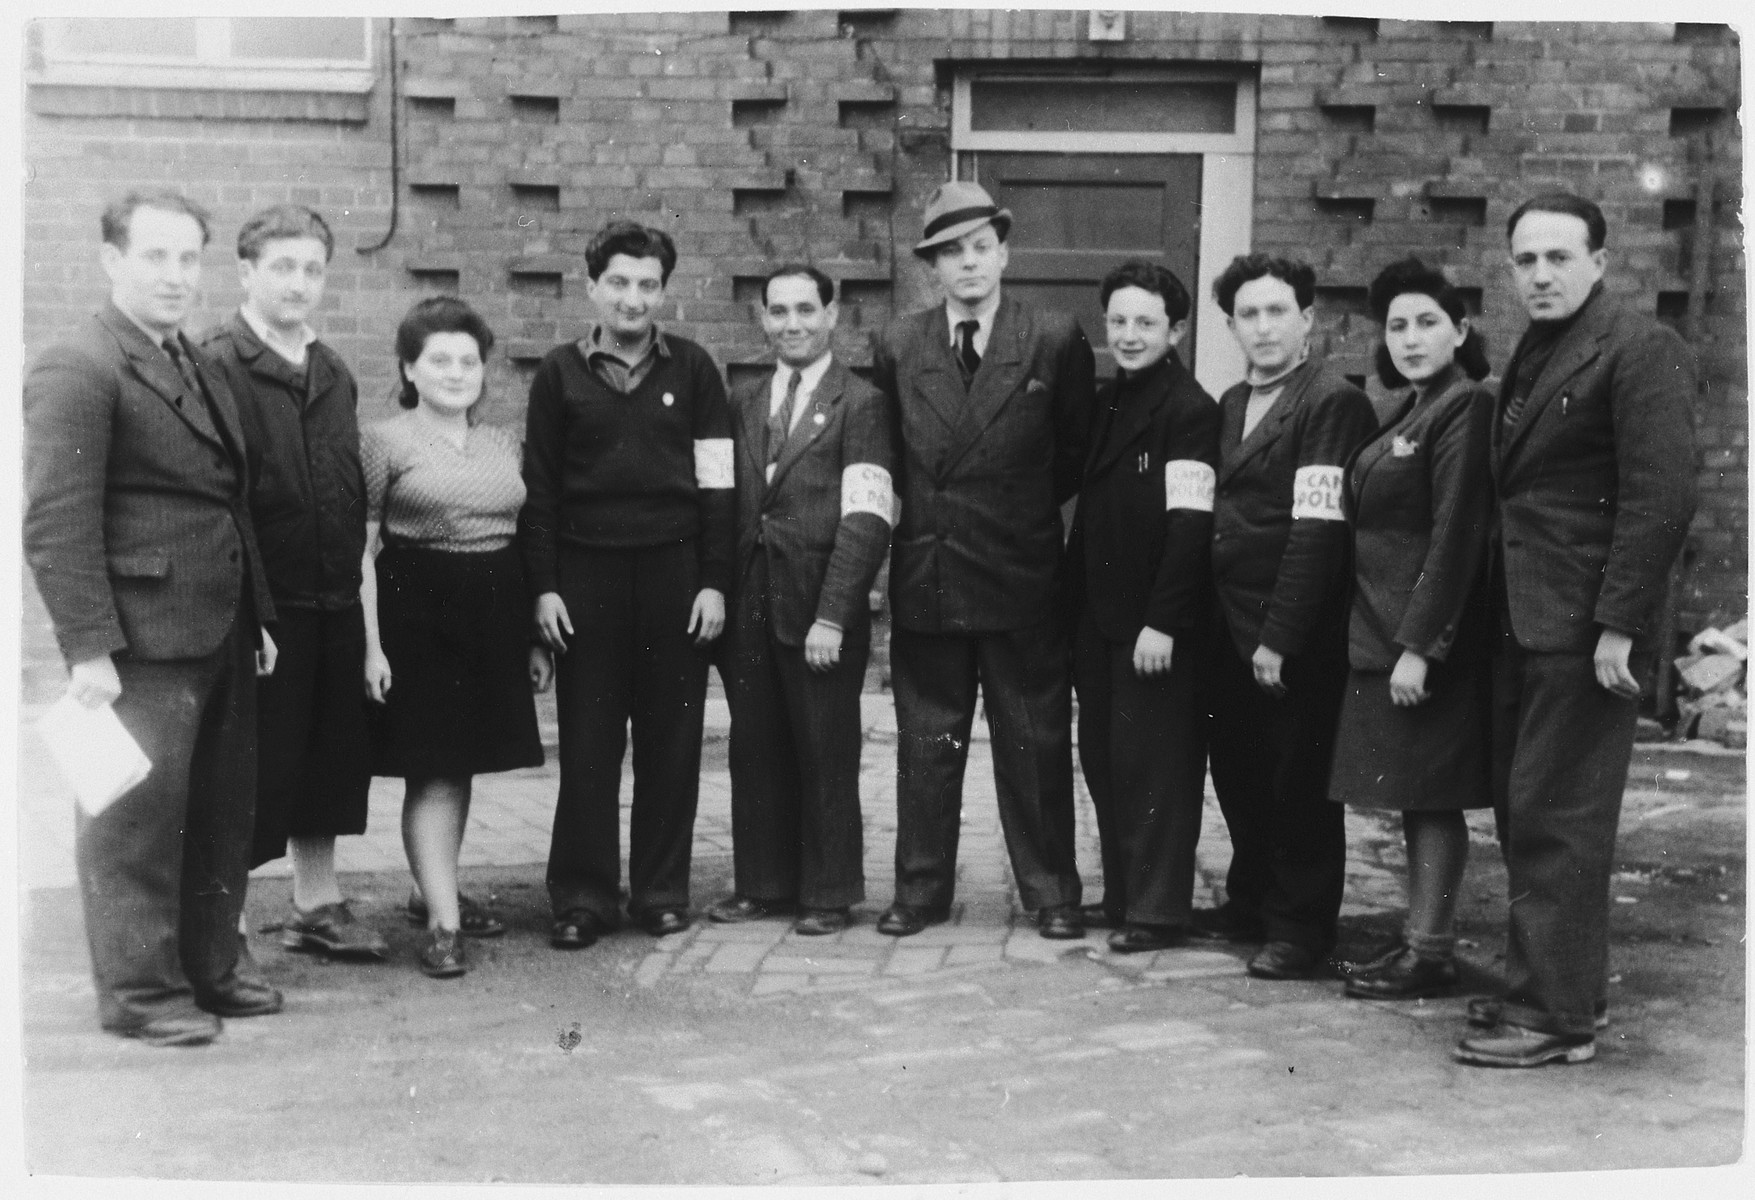 Group portrait of Jewish police in the Vinnhorst DP center.    Included in the photograph are Israel Zaks, Gutek Fiszel, Narwa and Chaim Katz.  Sam (Mulek) Pilcer is standing on the far right.  Henry (Henryk) Arfa is on the left.  Nadja Ring is the woman on the right and worked as the secretary.  Also pictured is Jacob Stefan Rue, head of the police force.  He is the standing in the center, wearing a hat.